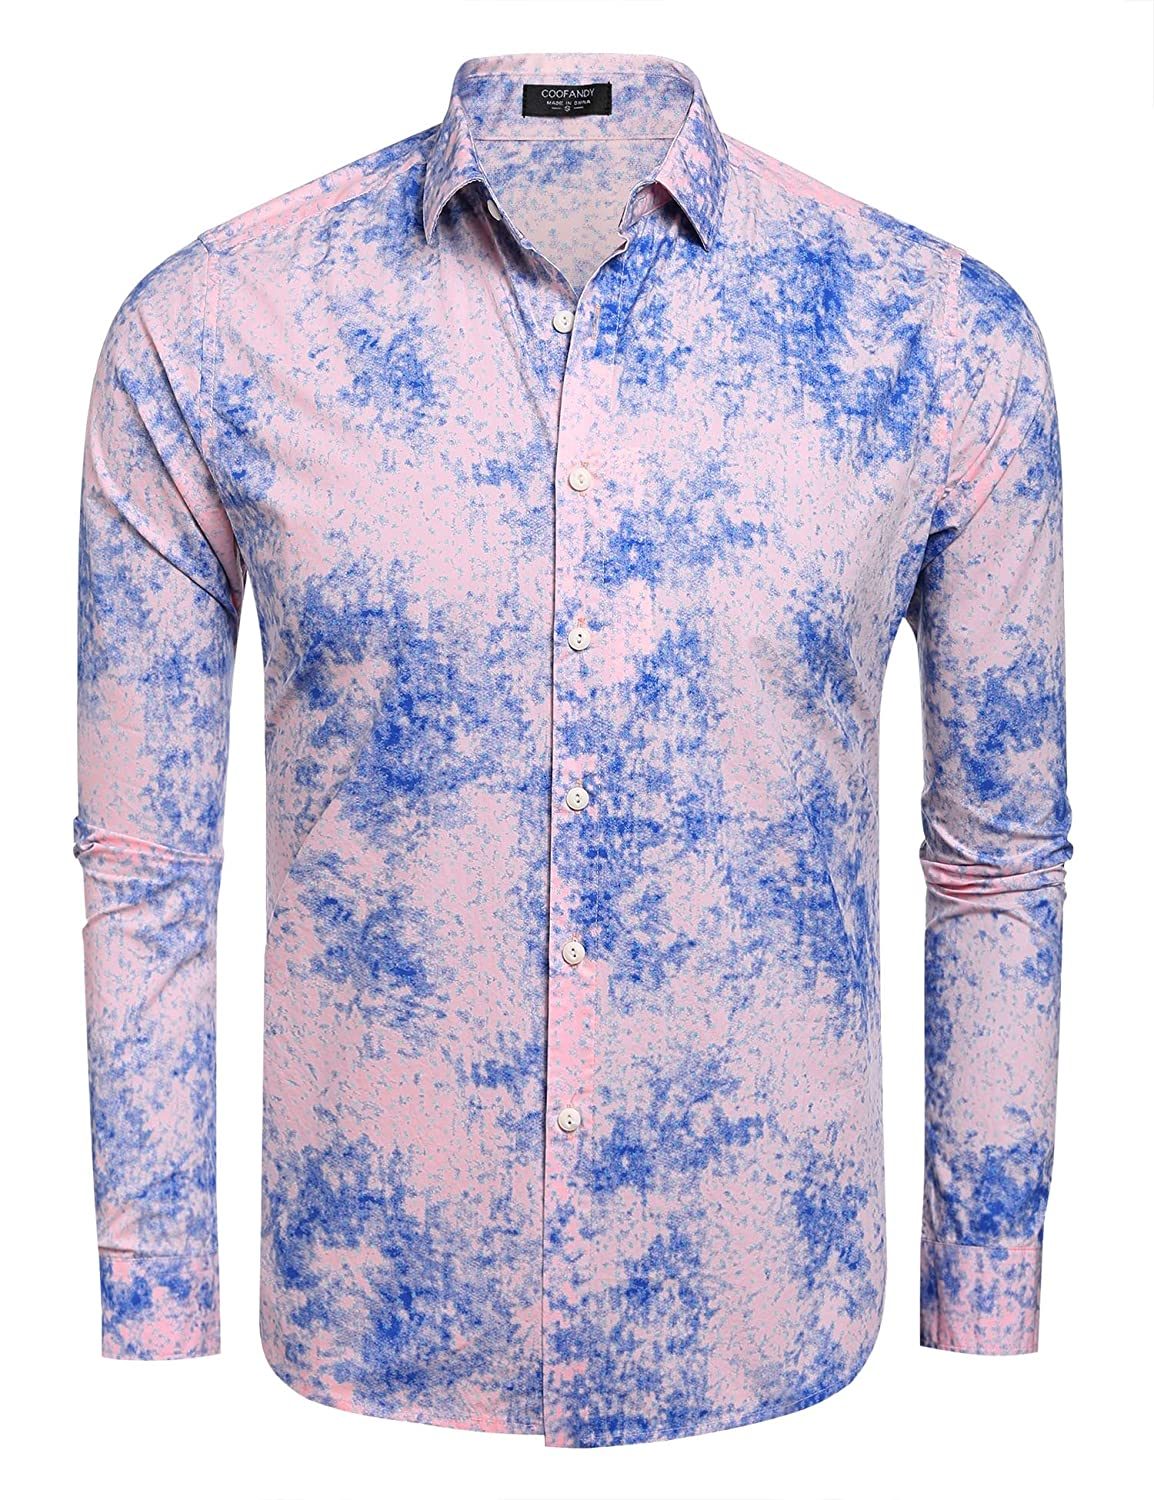 COOFANDY Mens Floral Print Casual Long Sleeve Shirts Slim Fit Button Down Dress Shirt